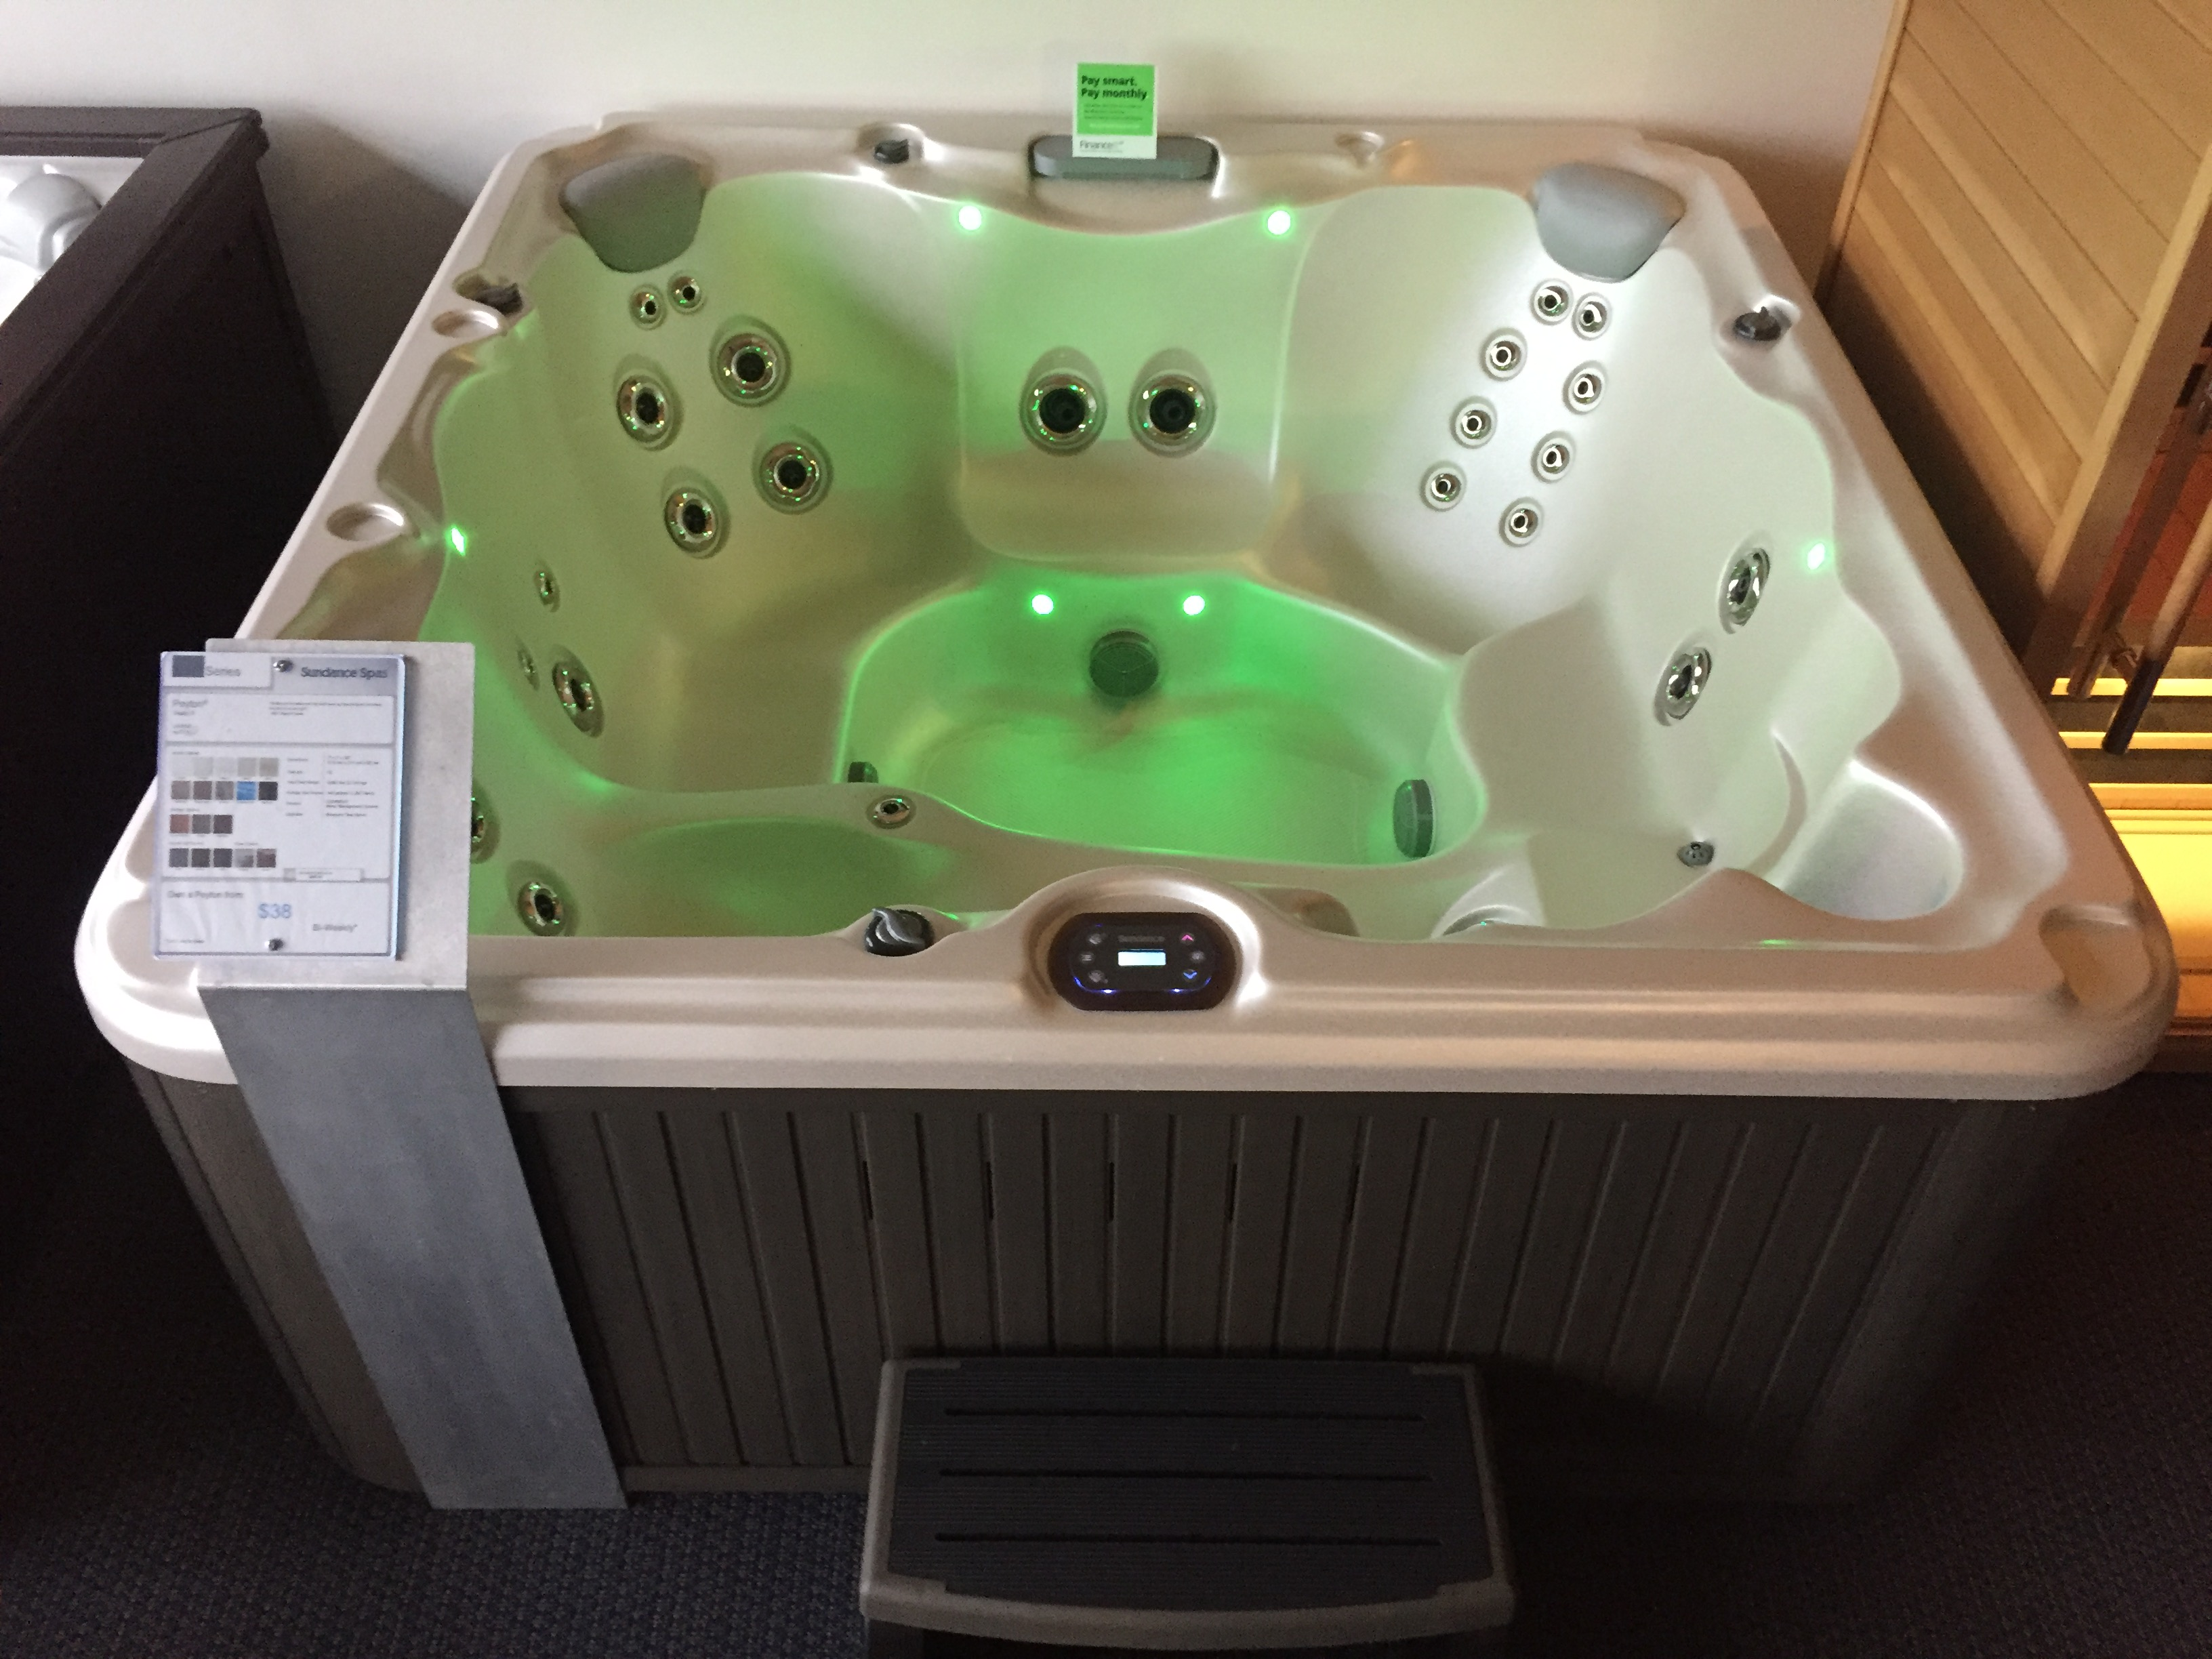 Sundance Spas Peyton model hot tub jacuzzi spa whirlpool hot tubs Niagara St Catharines Ontario specials discount special